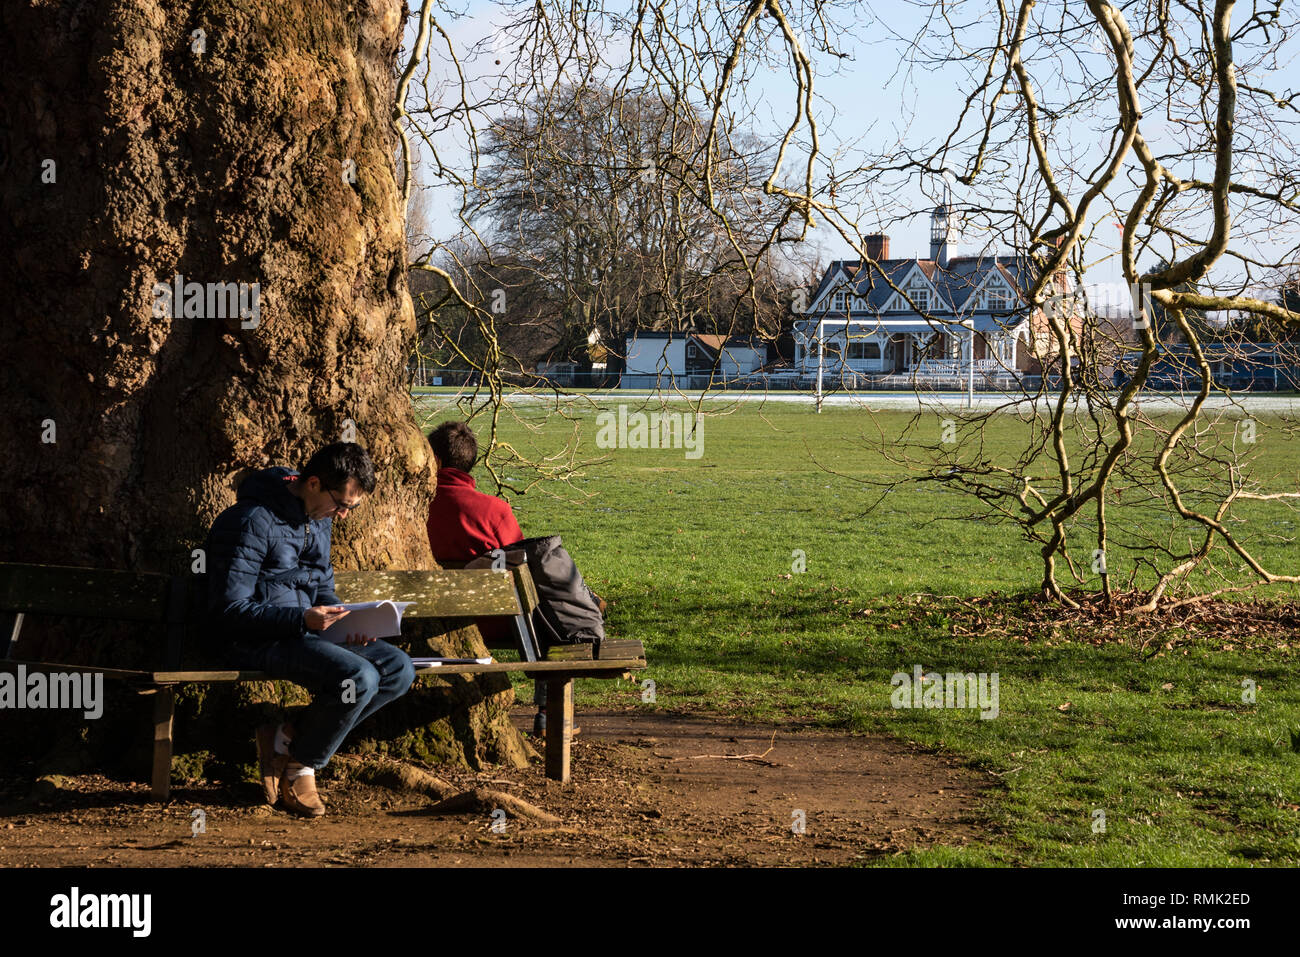 Students on a bench, Oxford University Parks in Winter - Stock Image